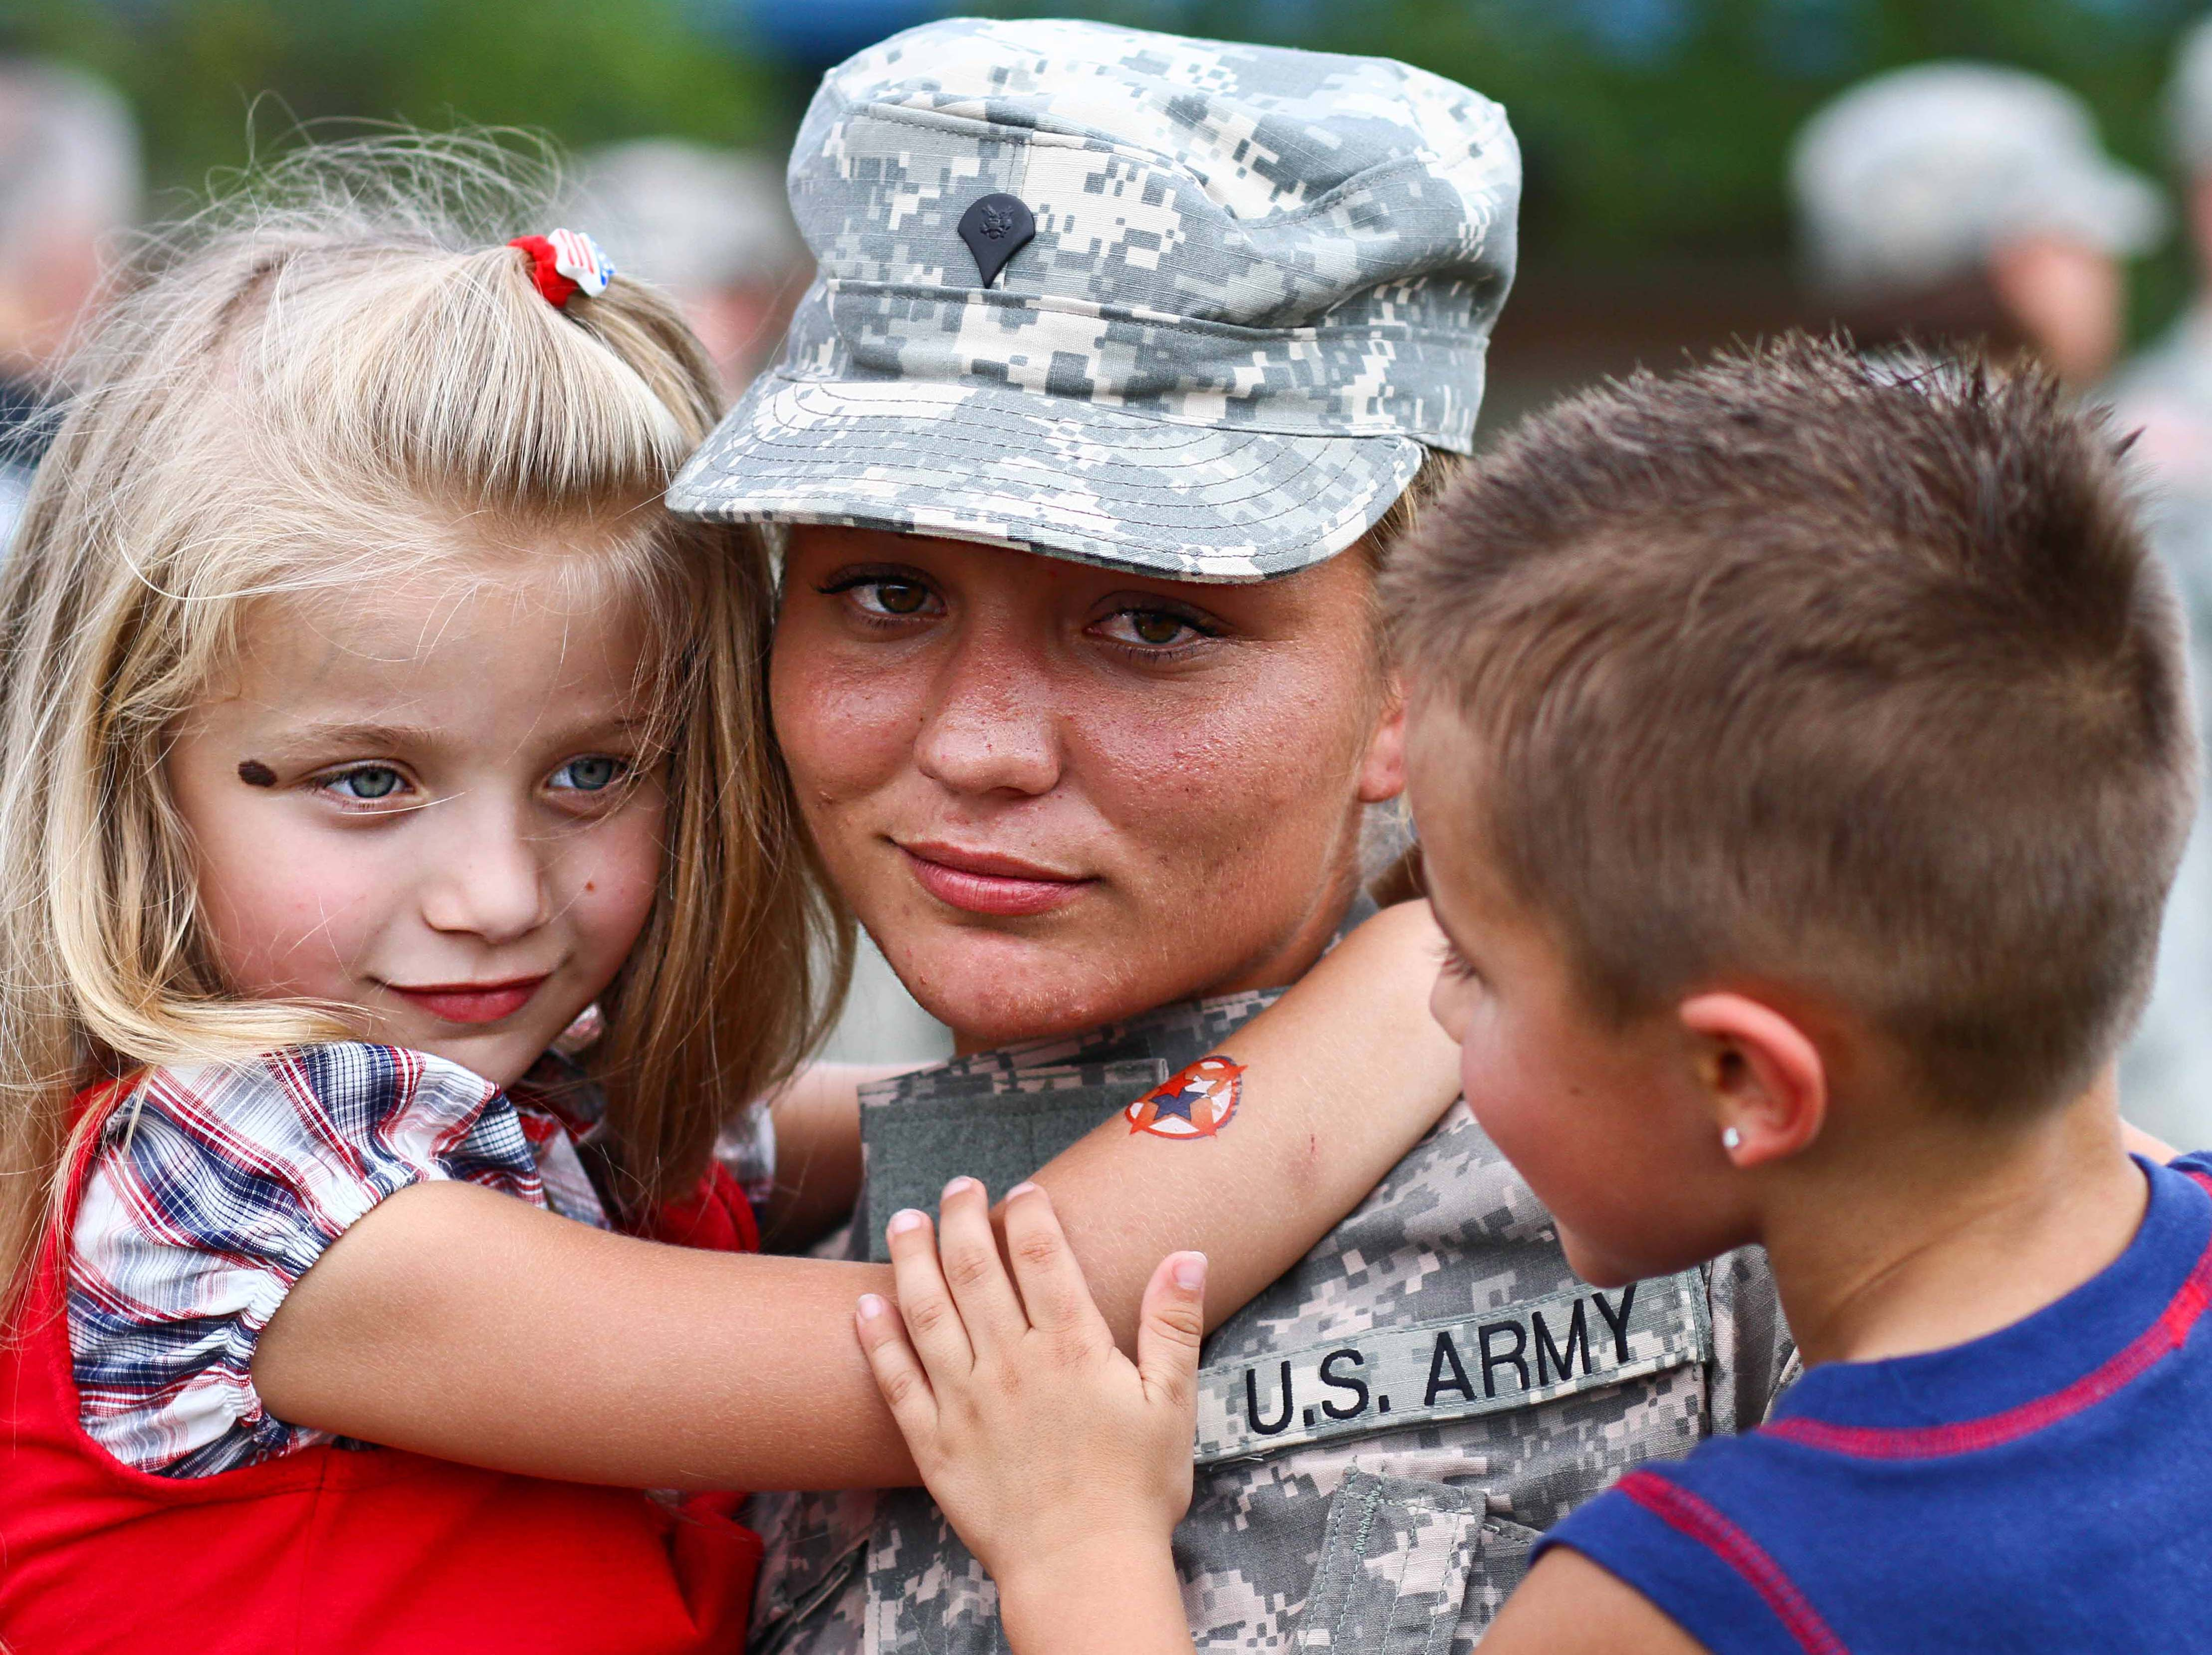 VA Loans: Is there a Minimum Time in Uniform Requirement for Active Duty Members?